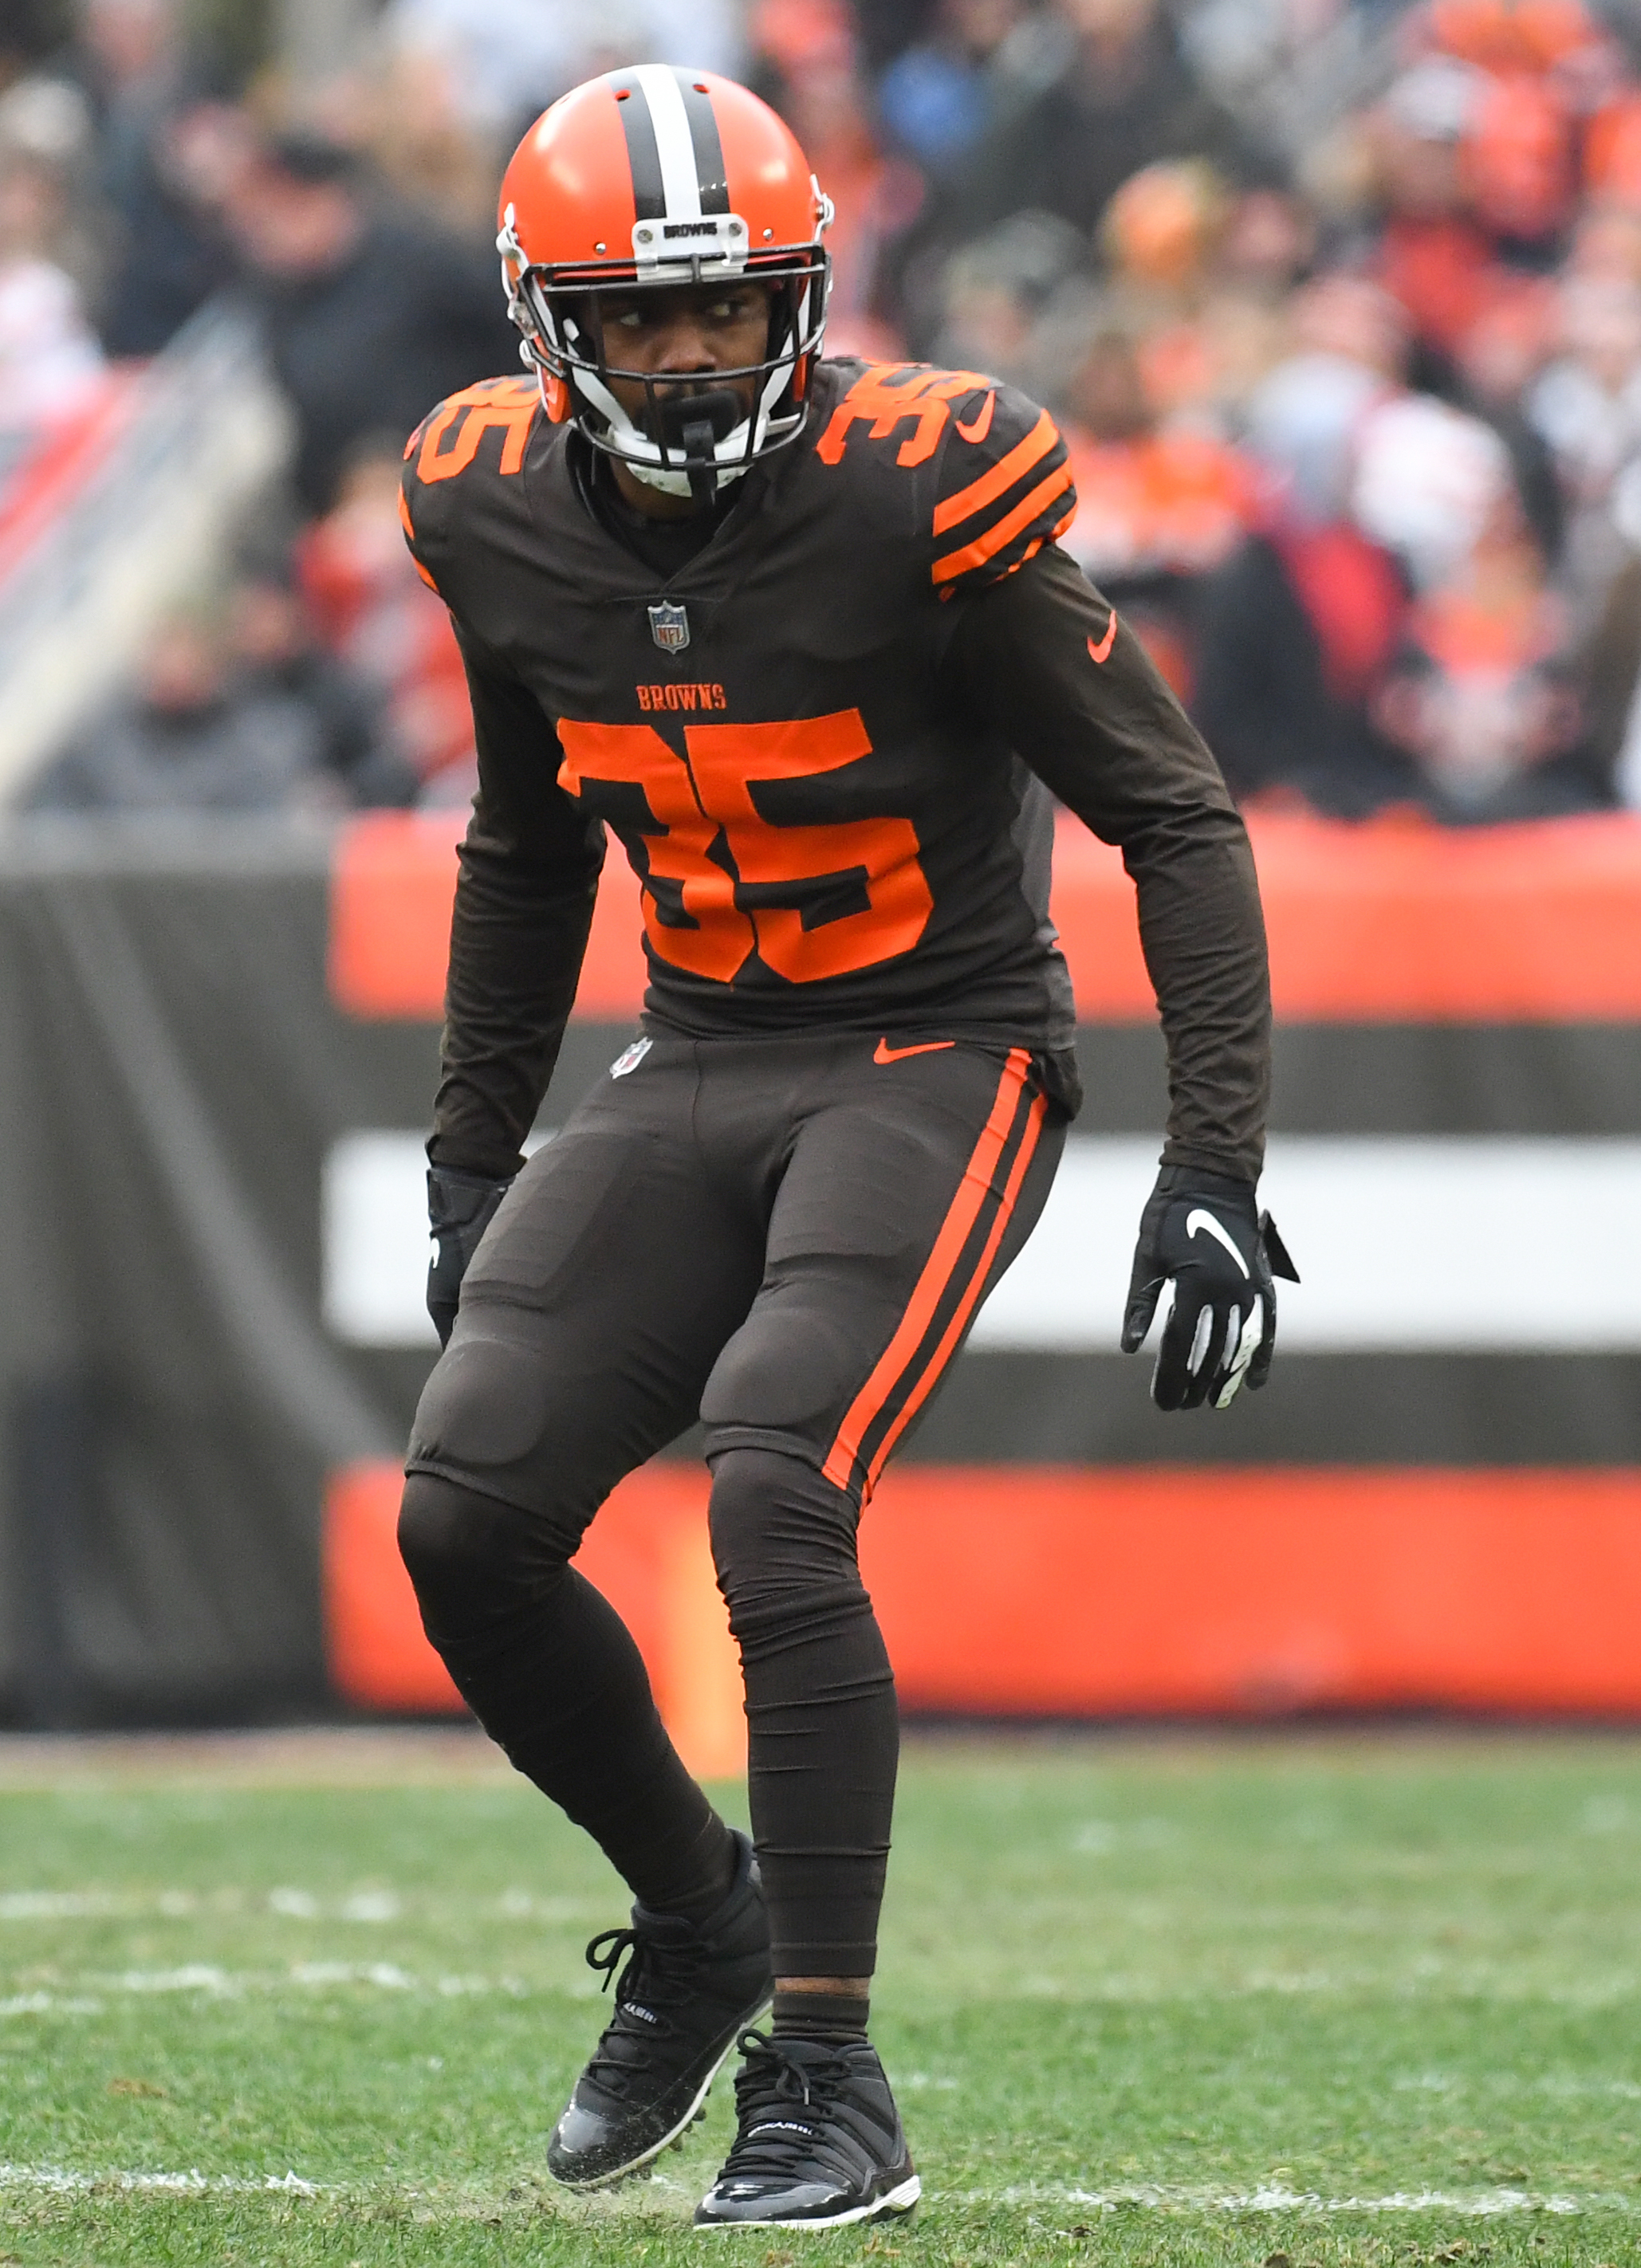 Jermaine Whitehead, at long last, has found his place in the NFL with the Browns